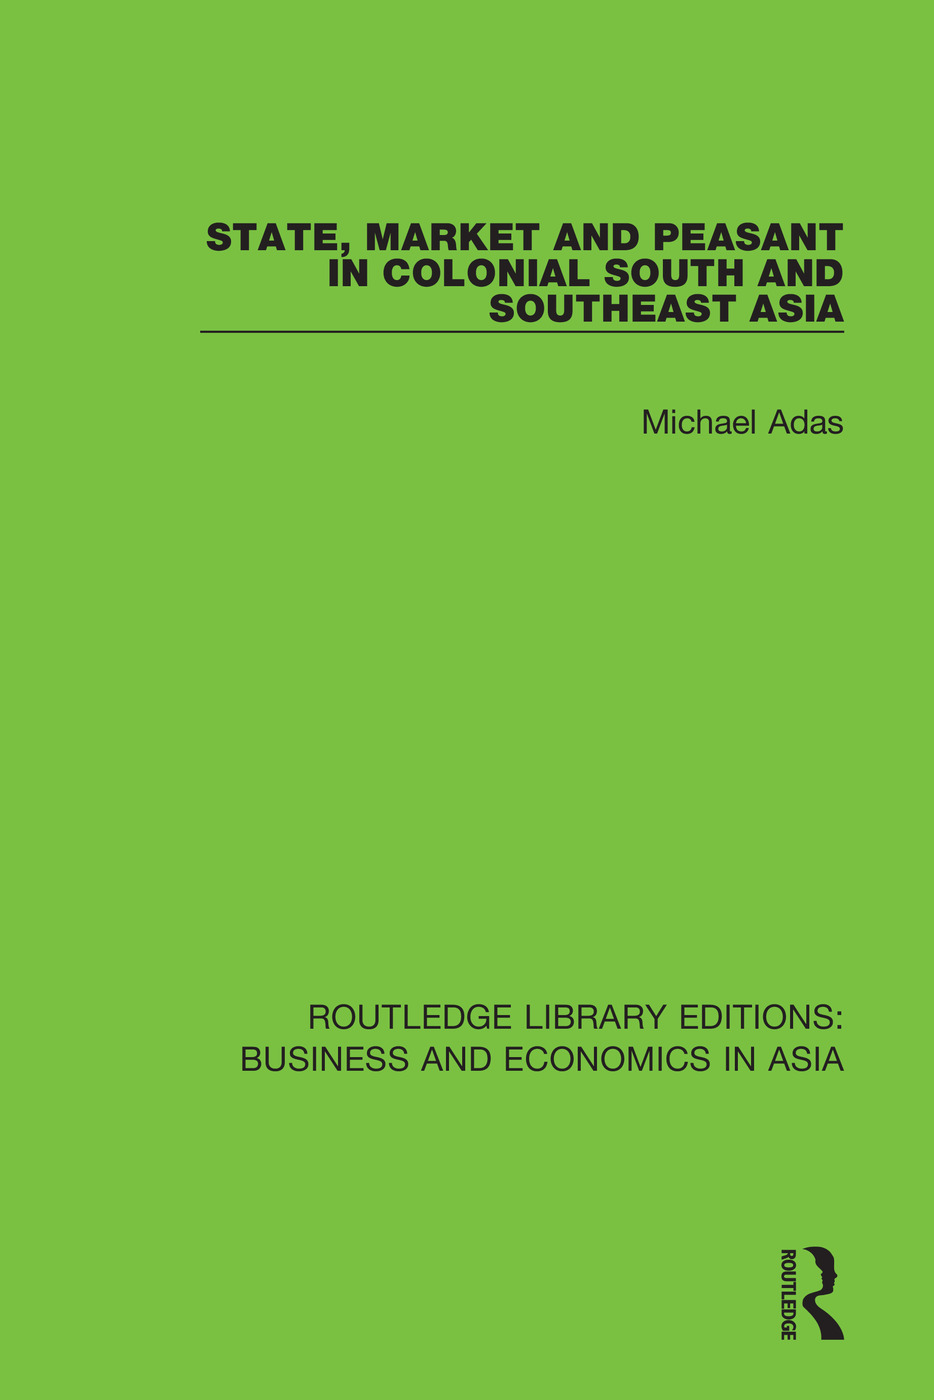 State, Market and Peasant in Colonial South and Southeast Asia book cover